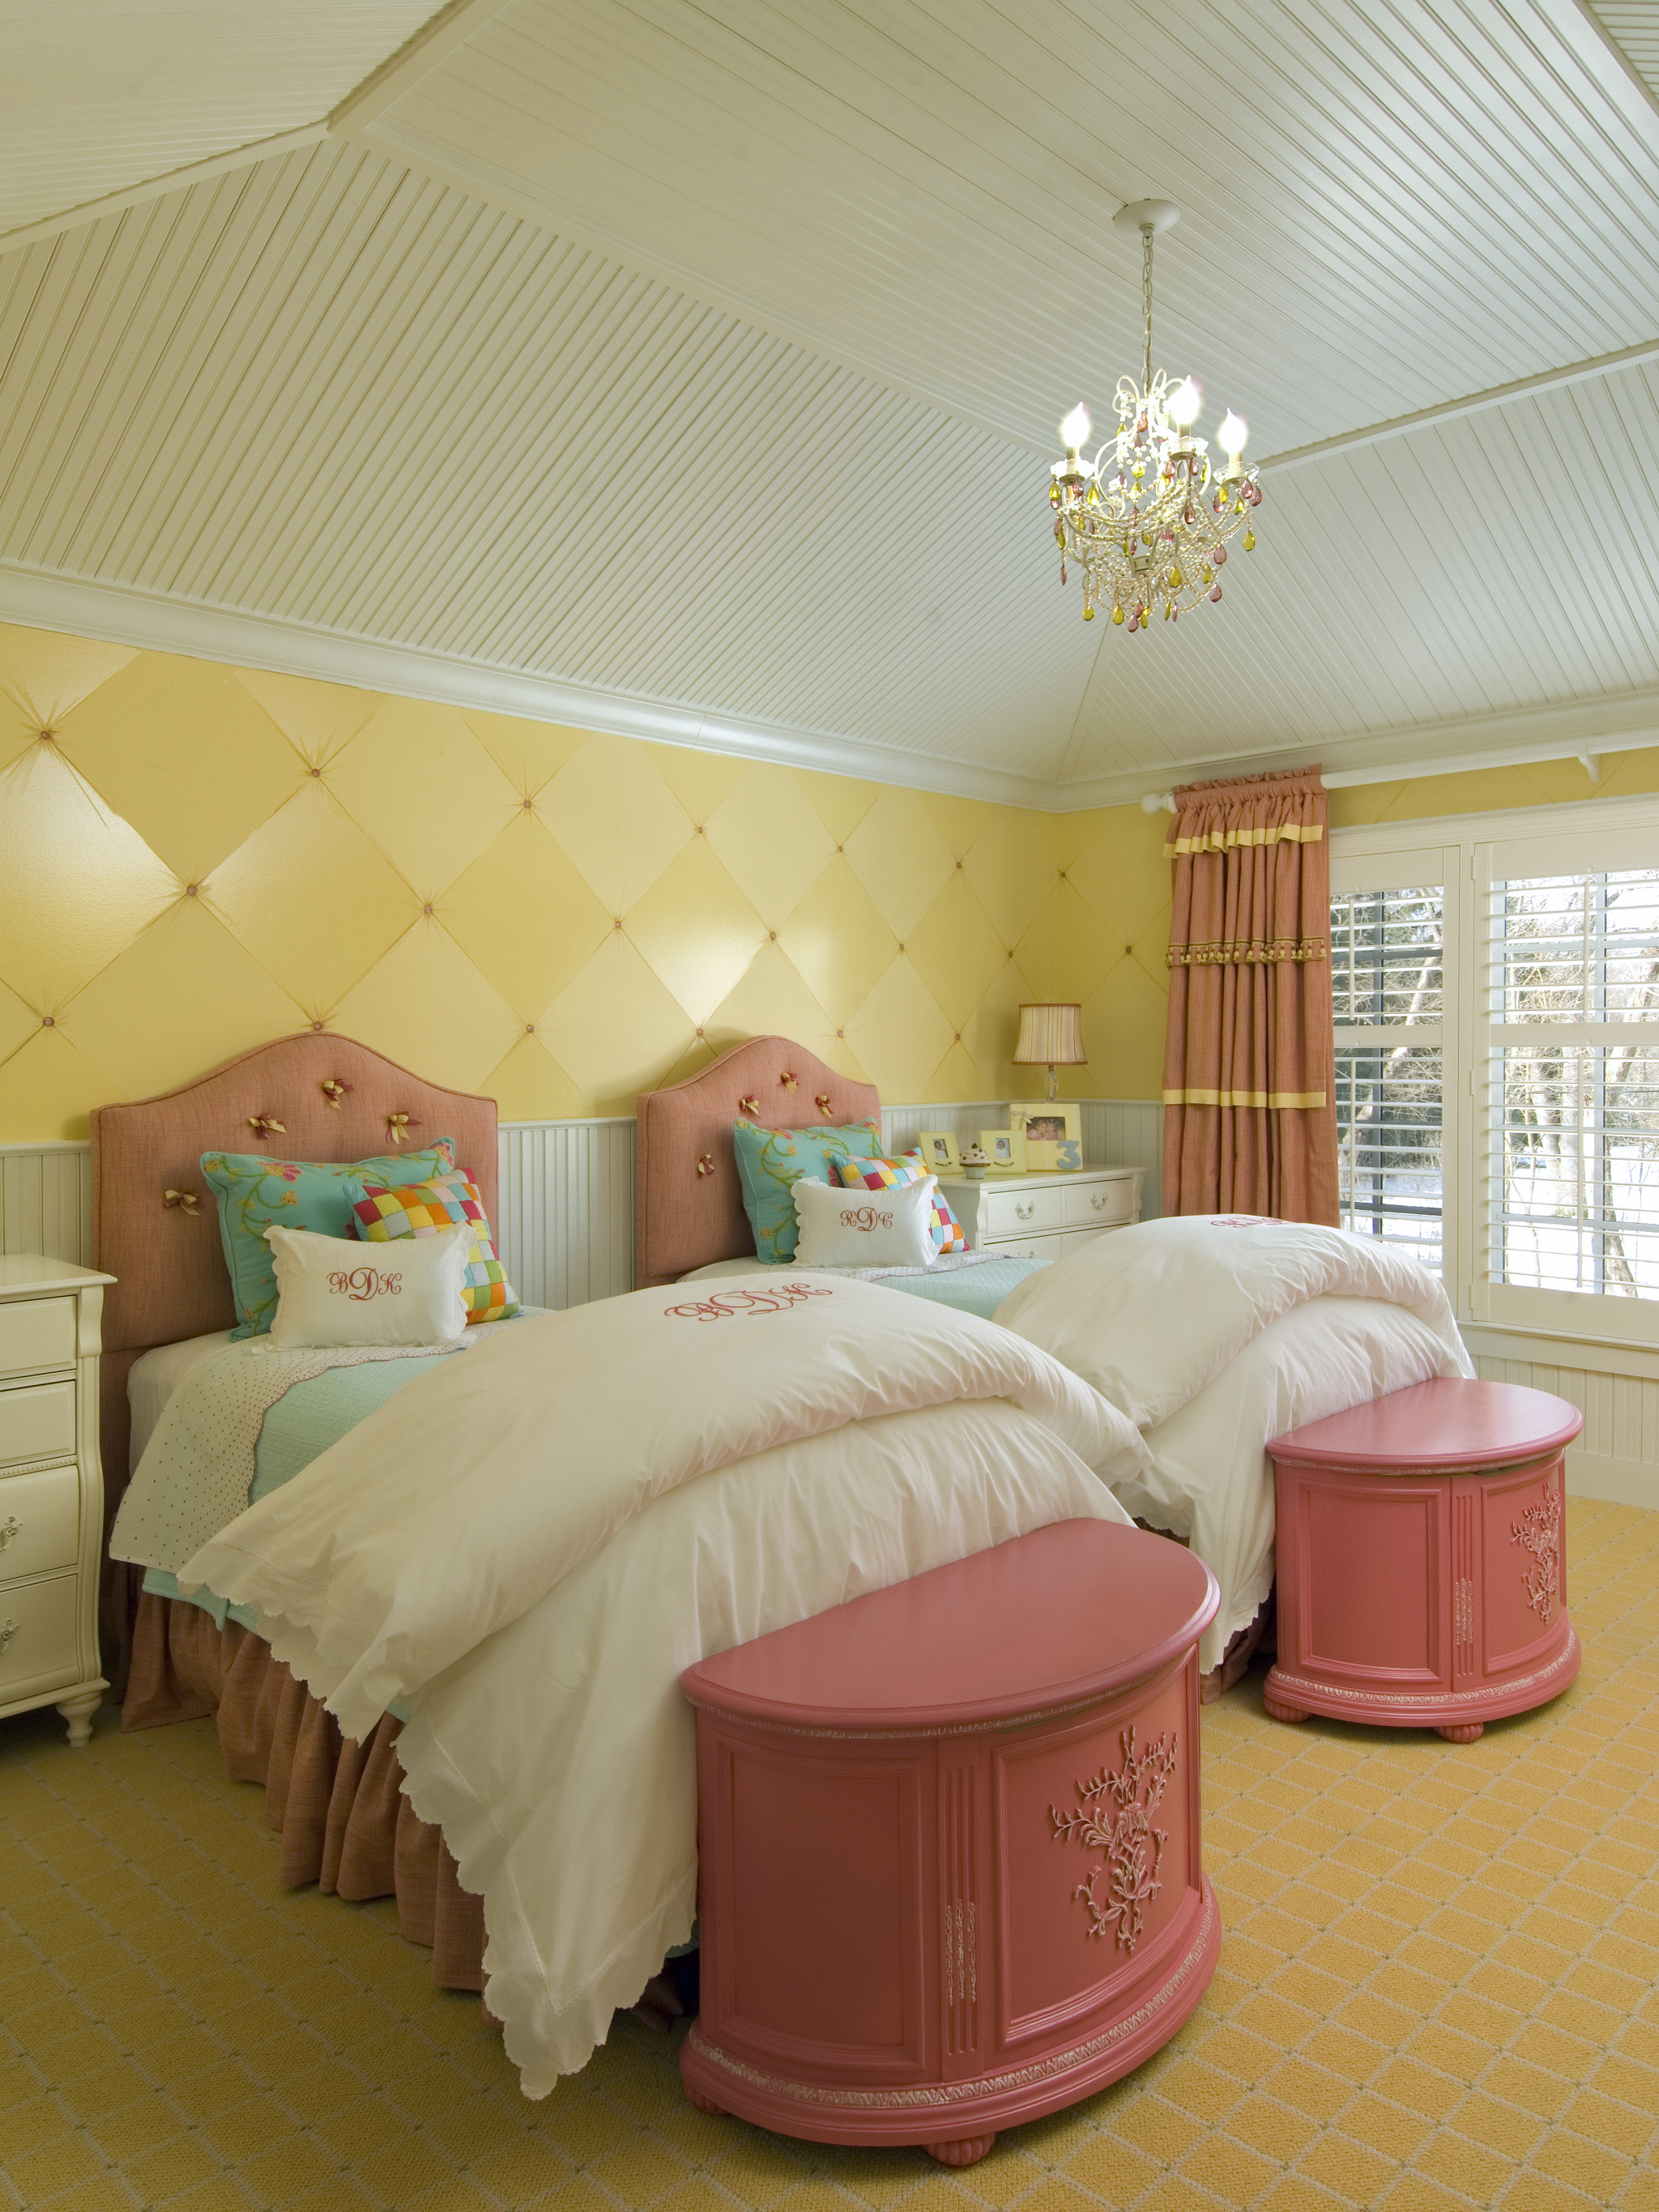 Cozy Traditional Twin Kids Bedroom With Yellow Wall Decor (Image 13 of 35)